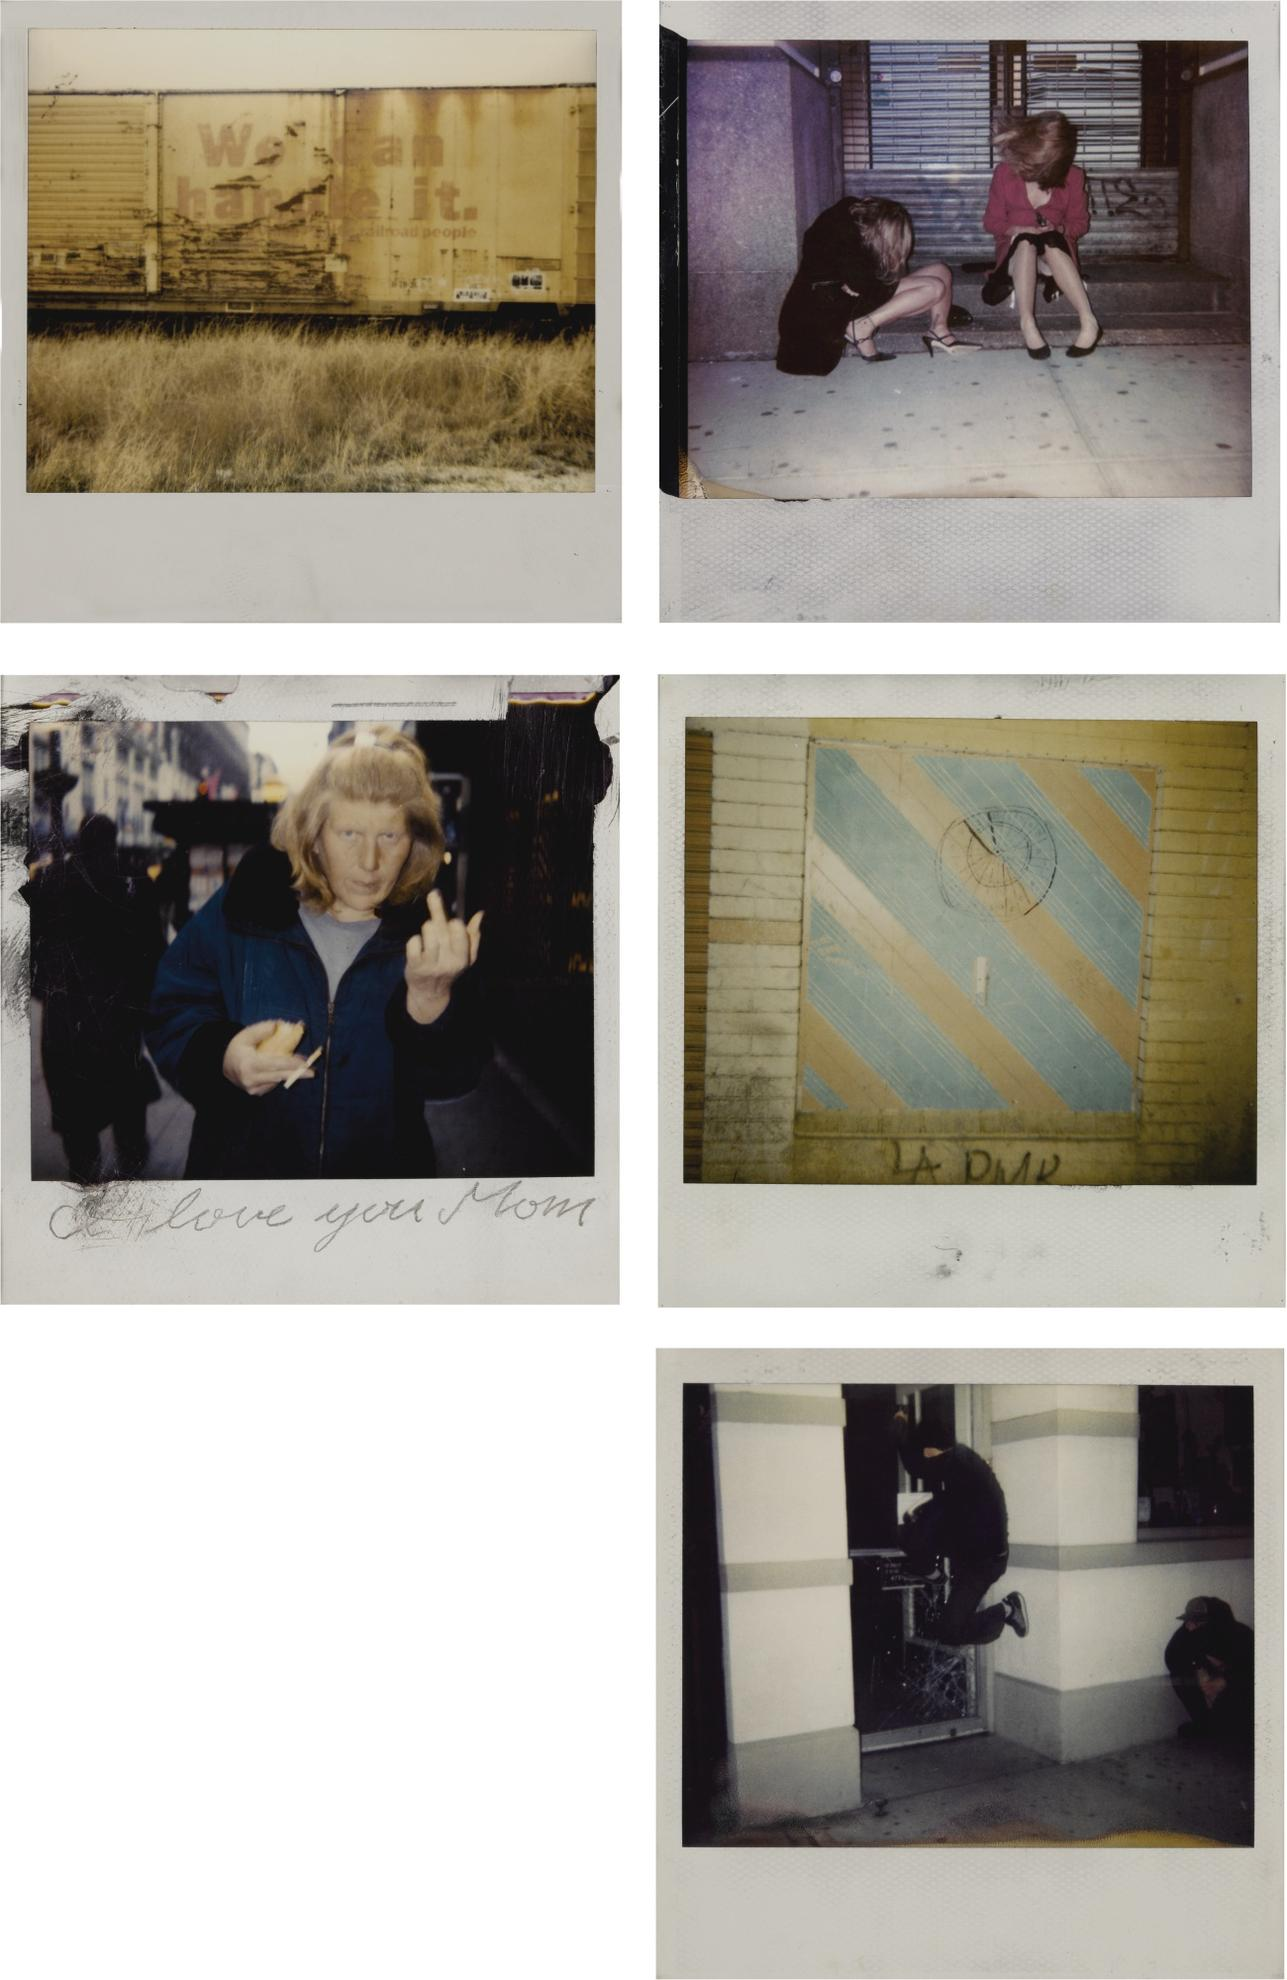 Dash Snow-Selected Images (Polaroid Enlargements): Untitled (I Love You Mom); Untitled (We Can Handle It); Untitled (Kicking a Broken Glass Door); Untitled (Drawn Dart Board); and Untitled (Sitting on a Stoop)-2000